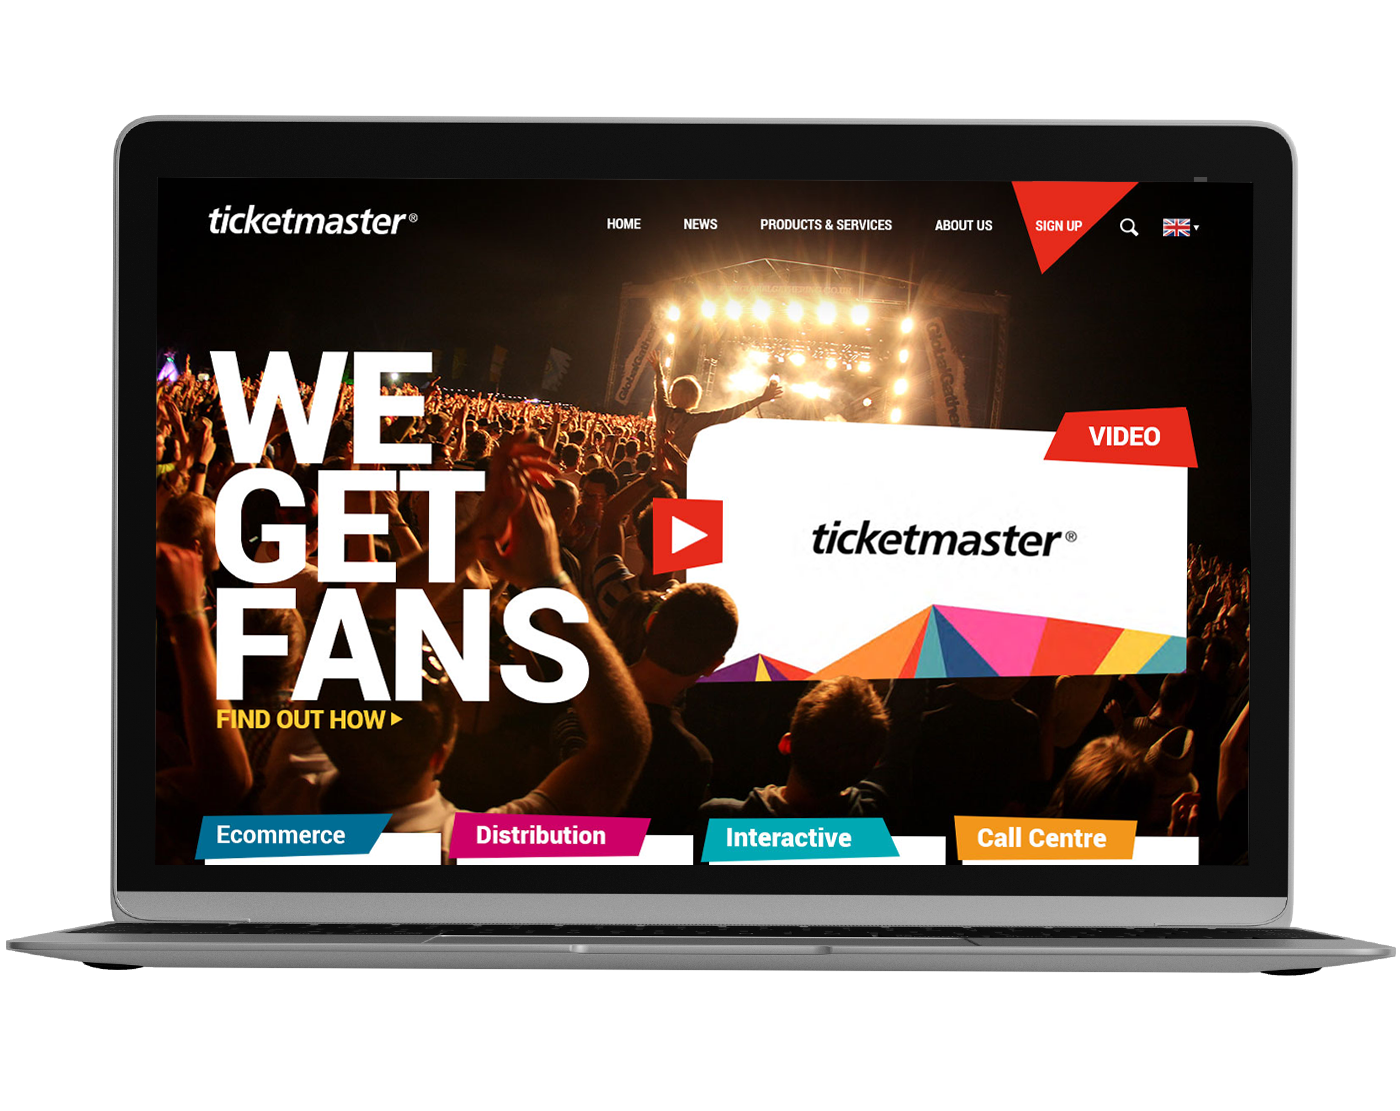 Ticketmaster header in Mac